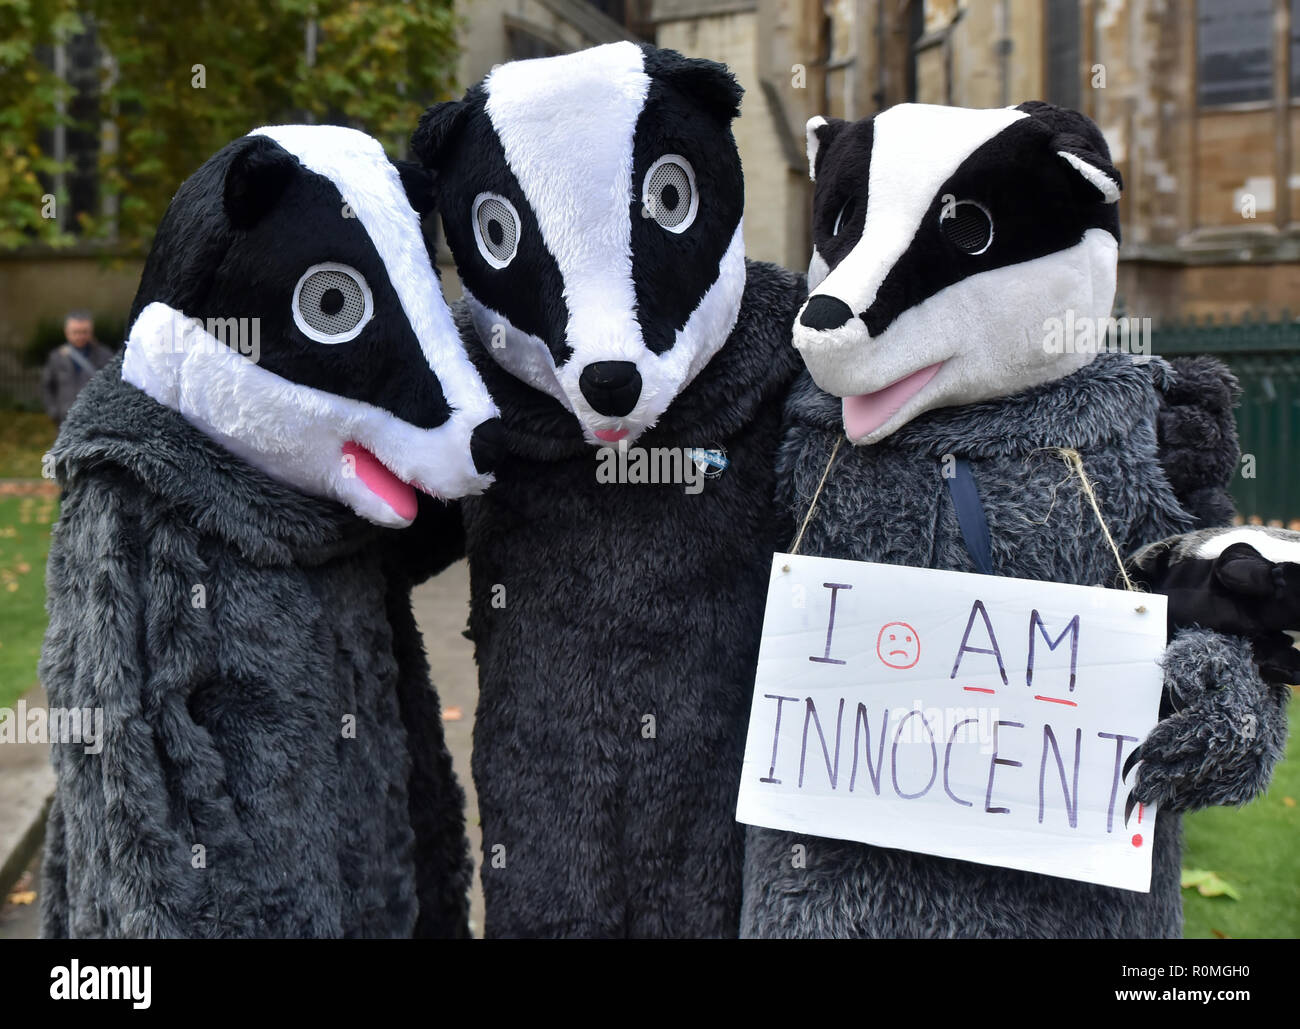 Westminster, London, UK. 6th November 2018. Westminster Demo against the Badger Cull to coincide with MP Chris Williamson's debate in Parliament. Credit: Matthew Chattle/Alamy Live News - Stock Image